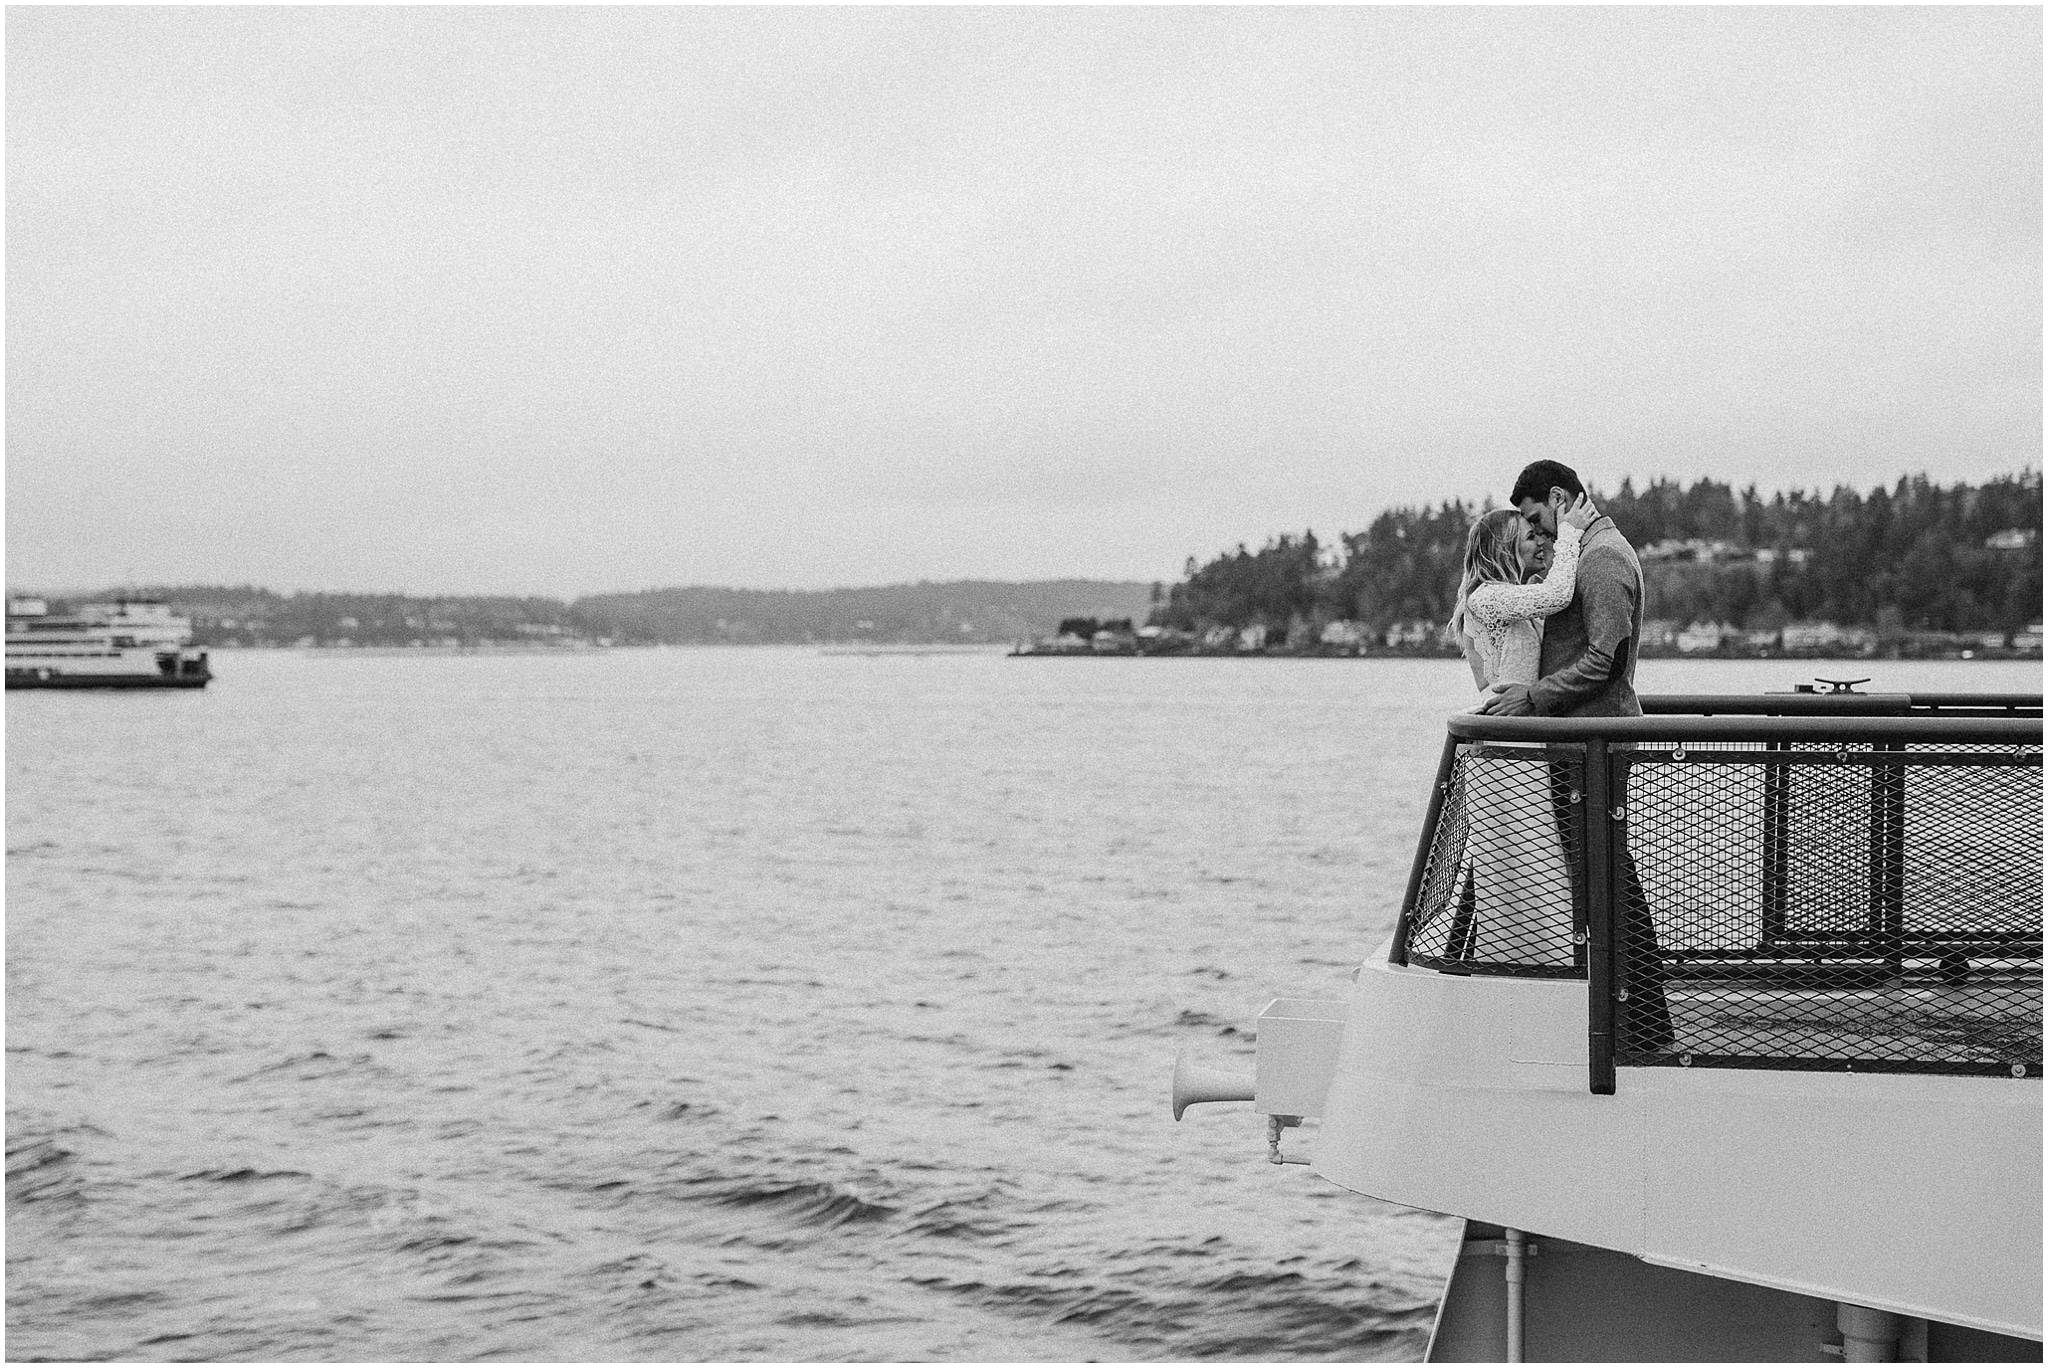 seattle ferry elopementSeattle Washington, Seattle Wedding Photographer, Seattle Elopement Photographer, Seattle wedding ideas, Seattle ferry elopement, Seattle elopement photography, Seattle elopement, Washington Engagement Photographer, Seattle engagement photographer, Best photographers in Washington, Best Washington elopement photographers, Best Washington Wedding photographers, Fun Elopement photo ideas, adventurous Elopement session, adventure elopement photographer, hipster couple engagement photos